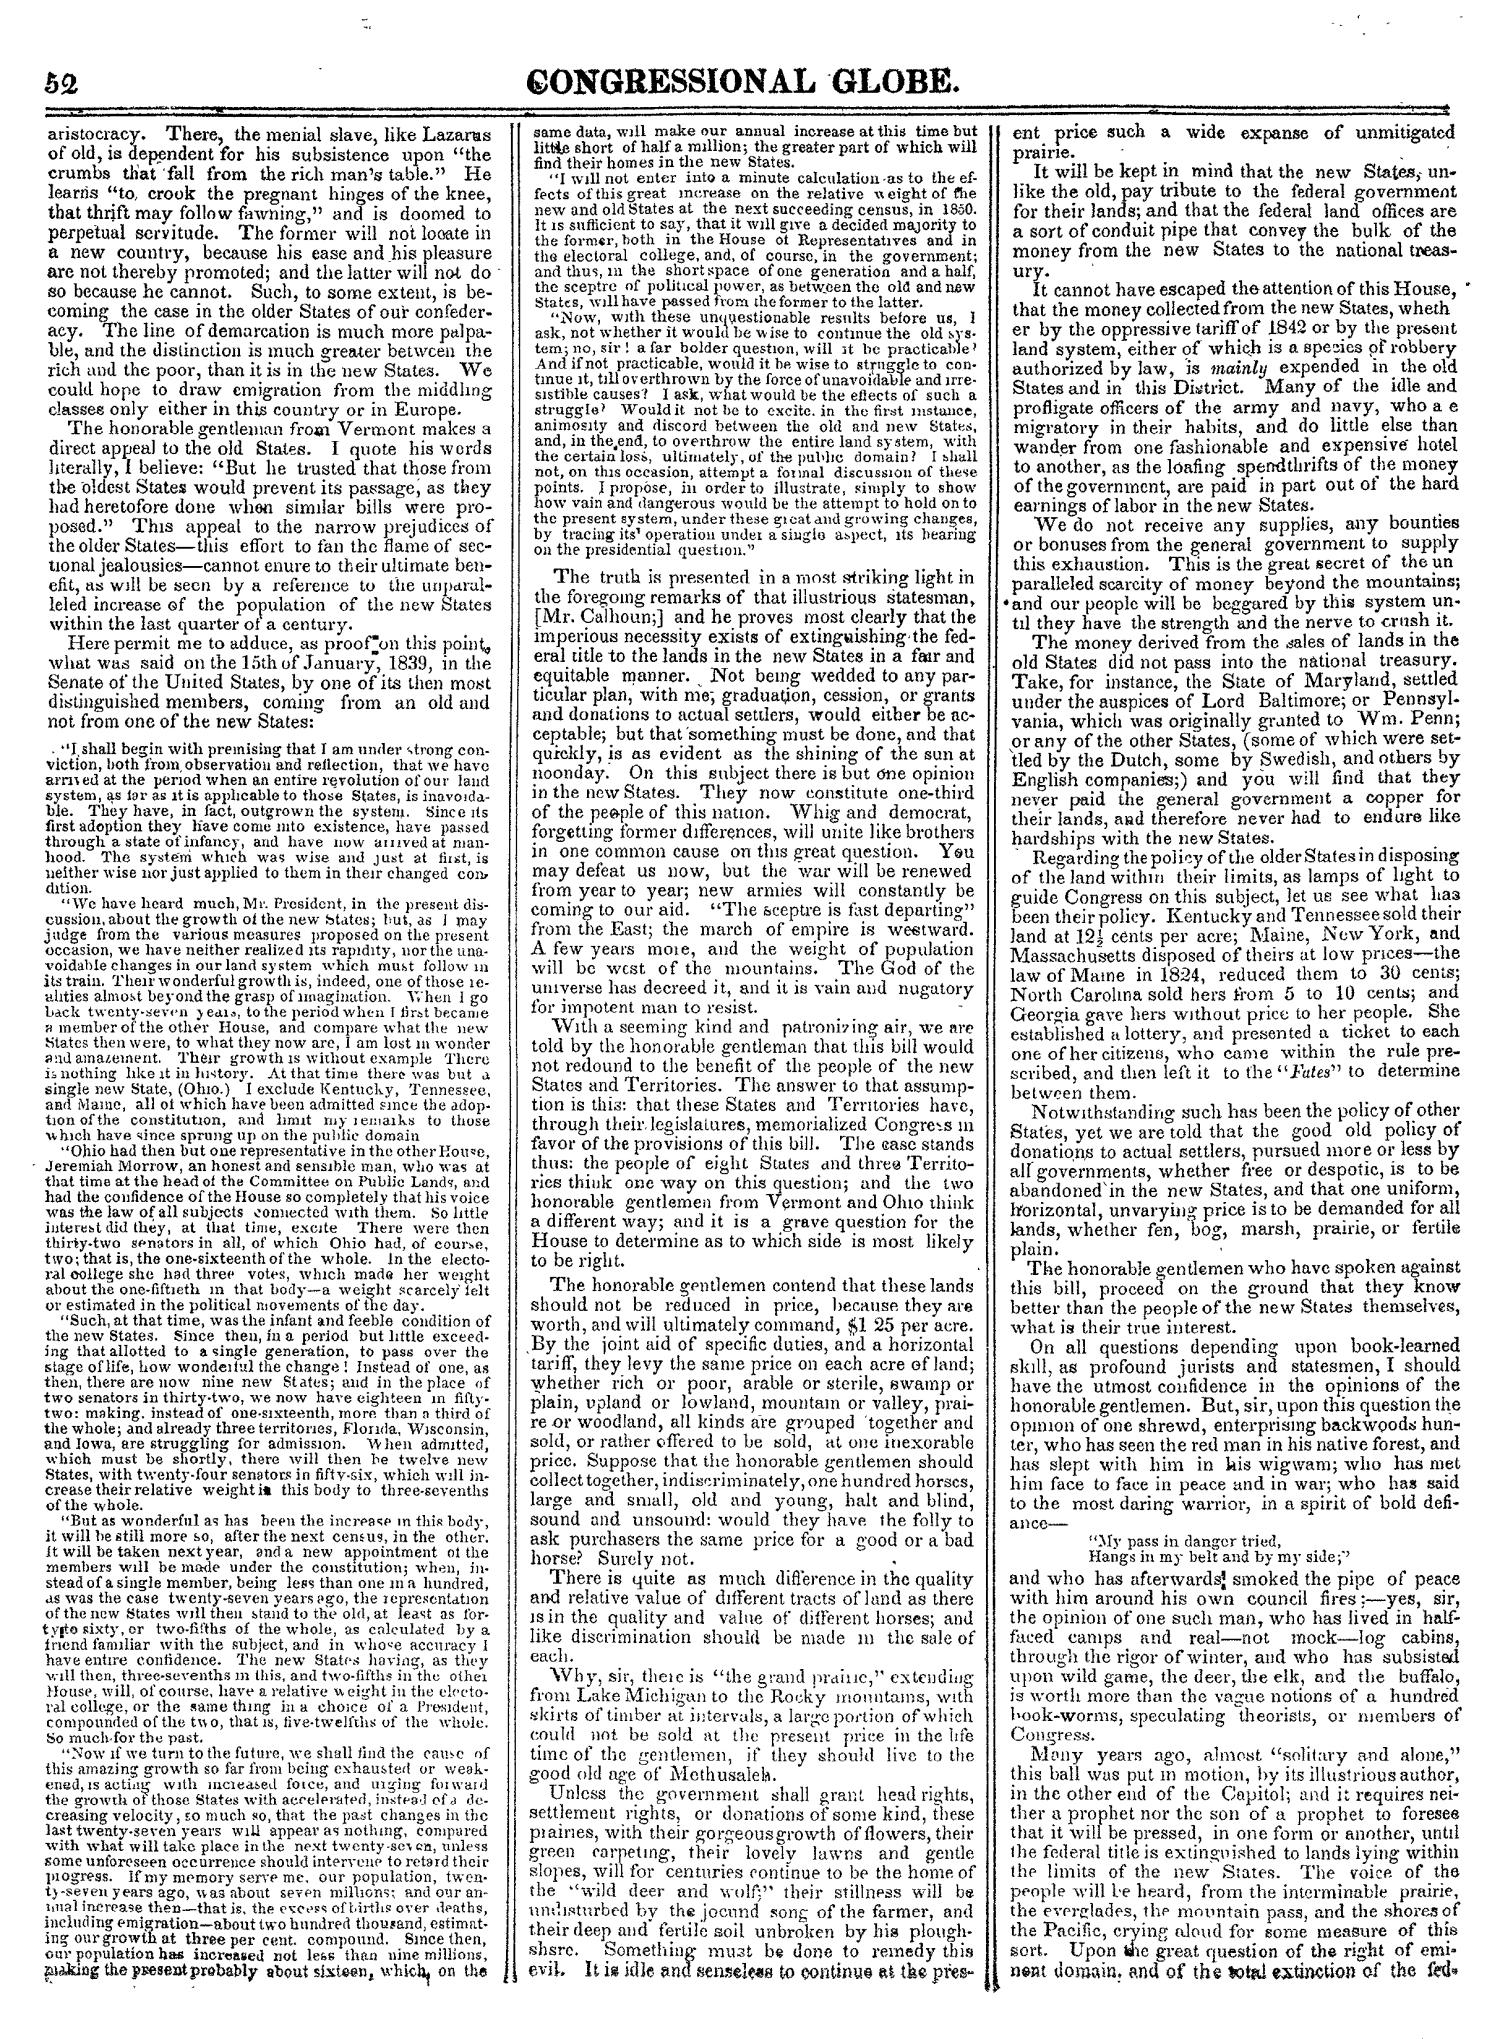 The Congressional Globe, Volume 14: Twenty-Eighth Congress, Second Session                                                                                                      52